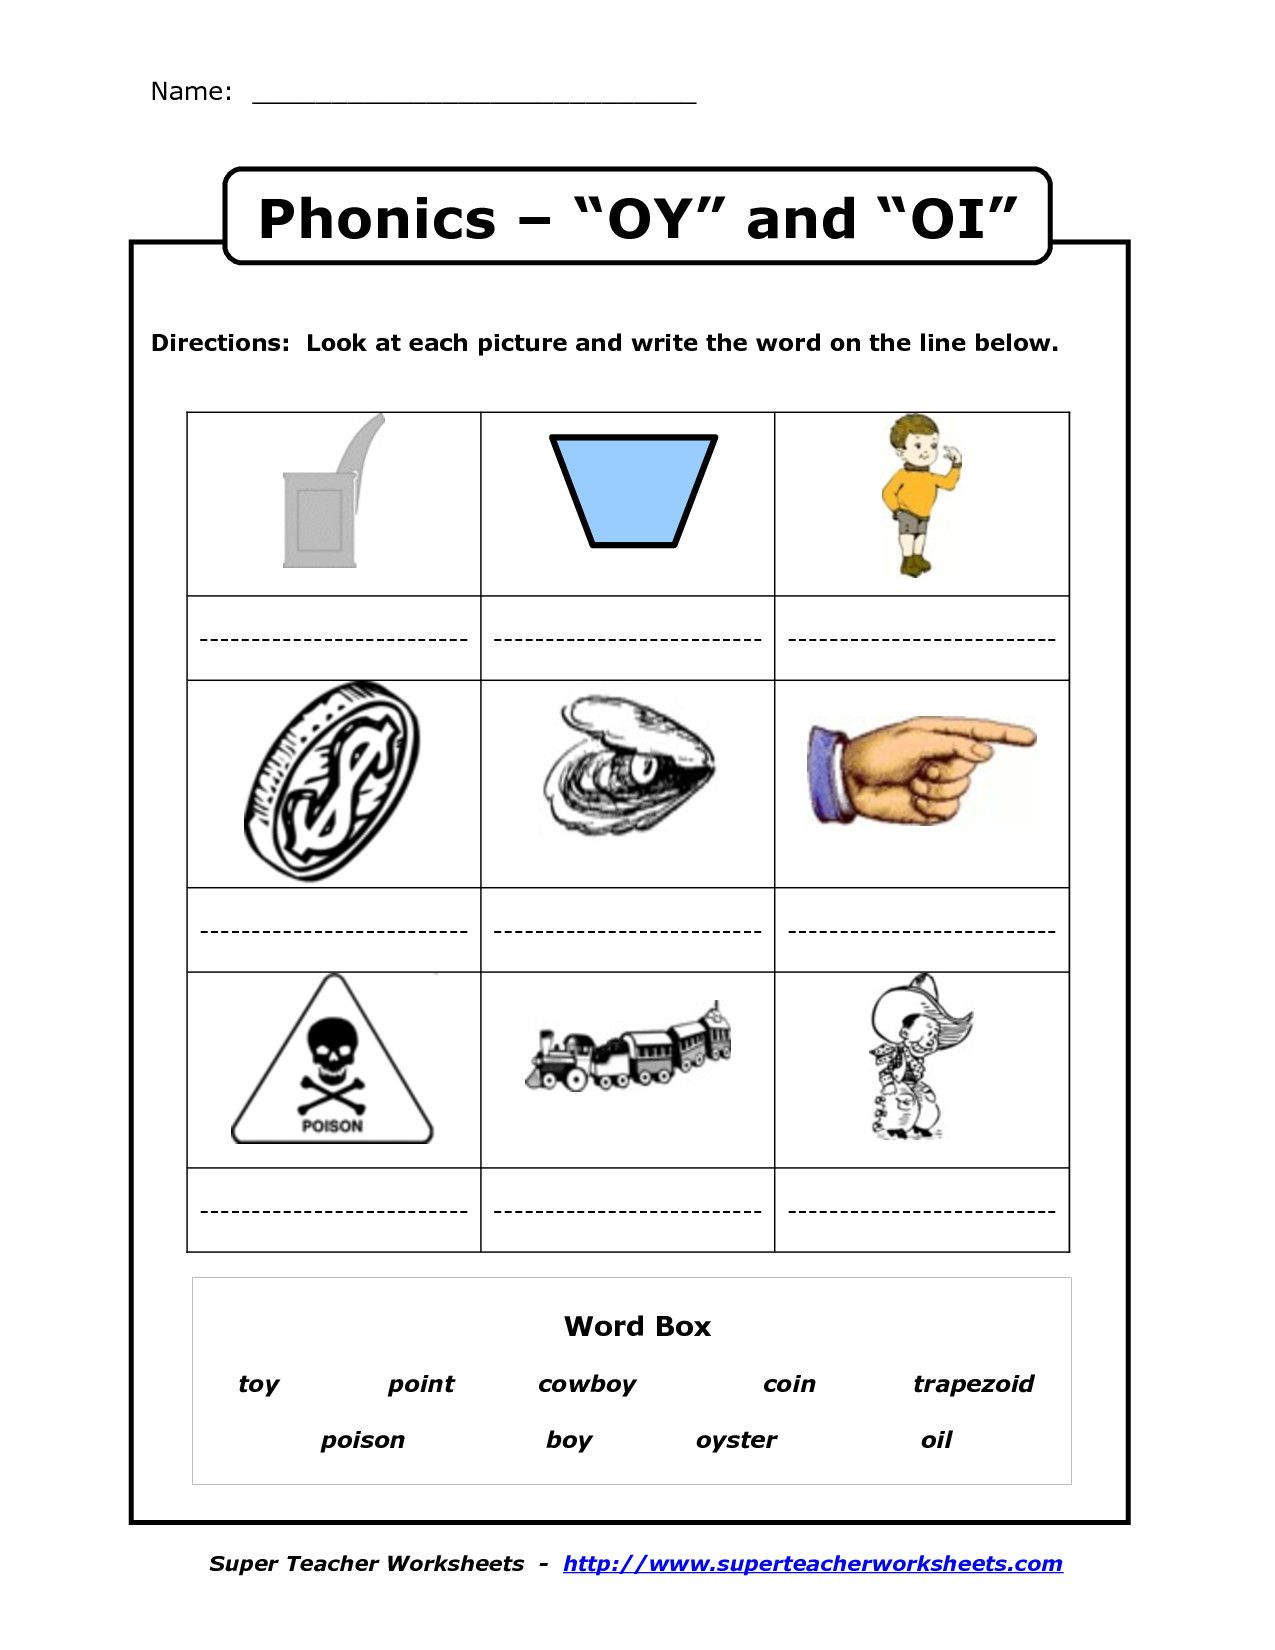 medium resolution of https://dubaikhalifas.com/math-worksheet-did-you-hear-about-in-2020-blends-worksheets-consonant-blends-worksheets-phonics/